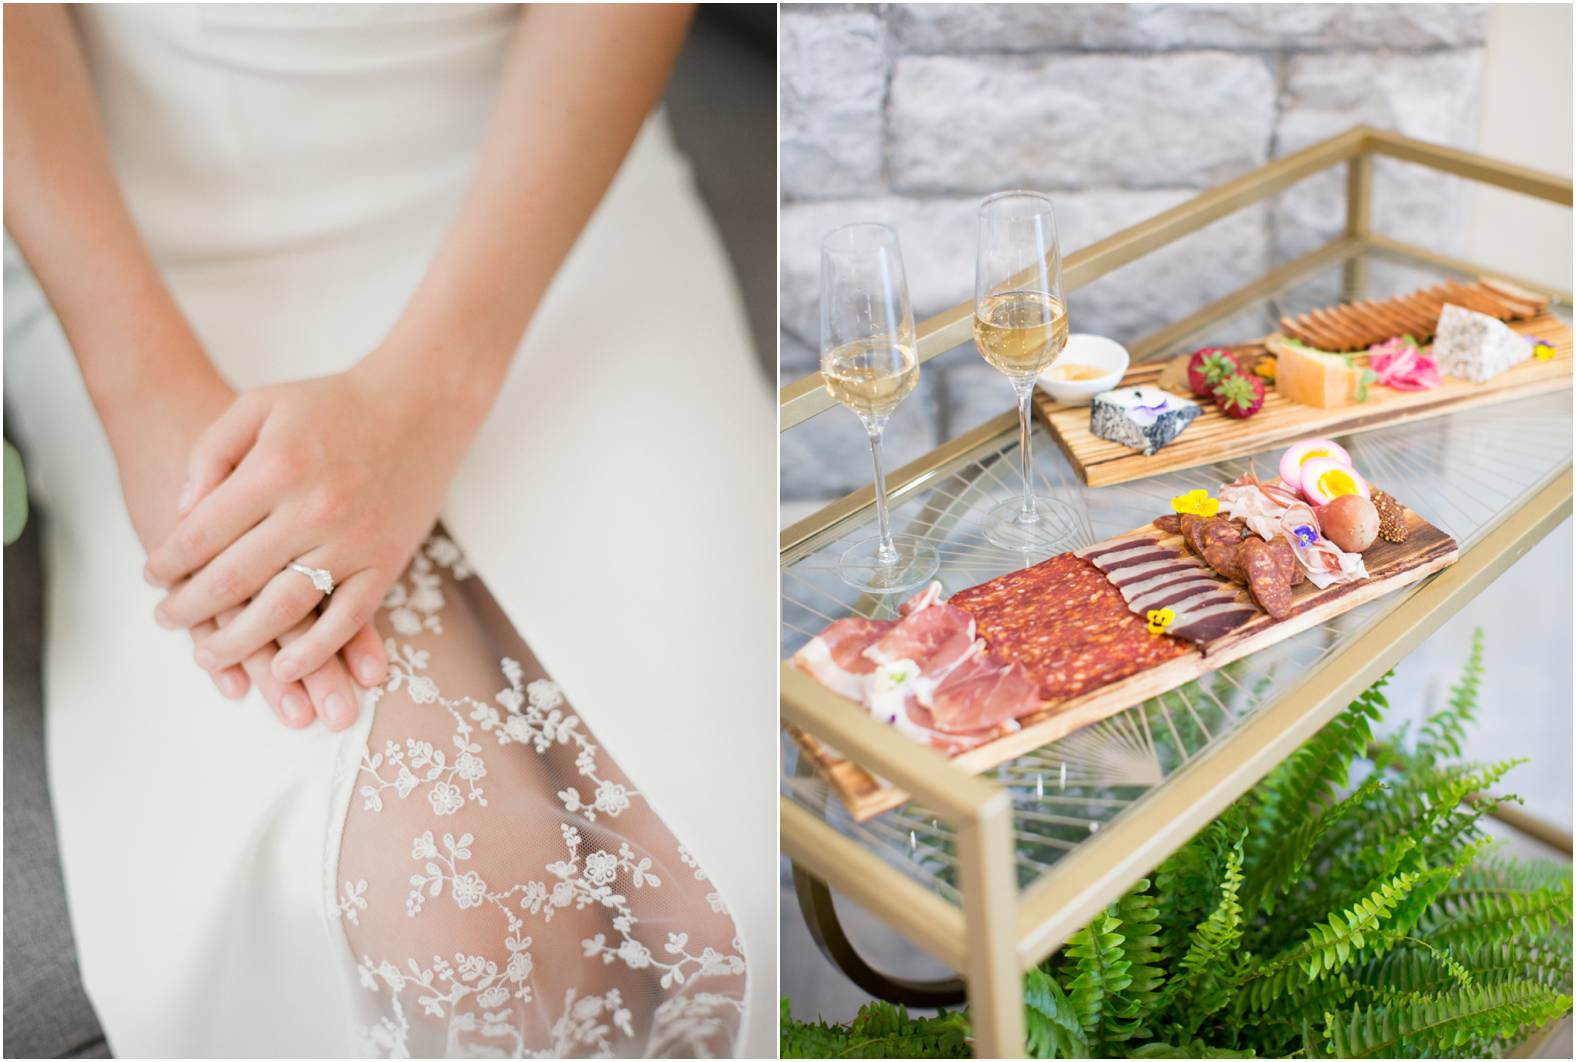 Custom charcuterie board for outdoor garden wedding at The Gate House in Niagara on the Lake.